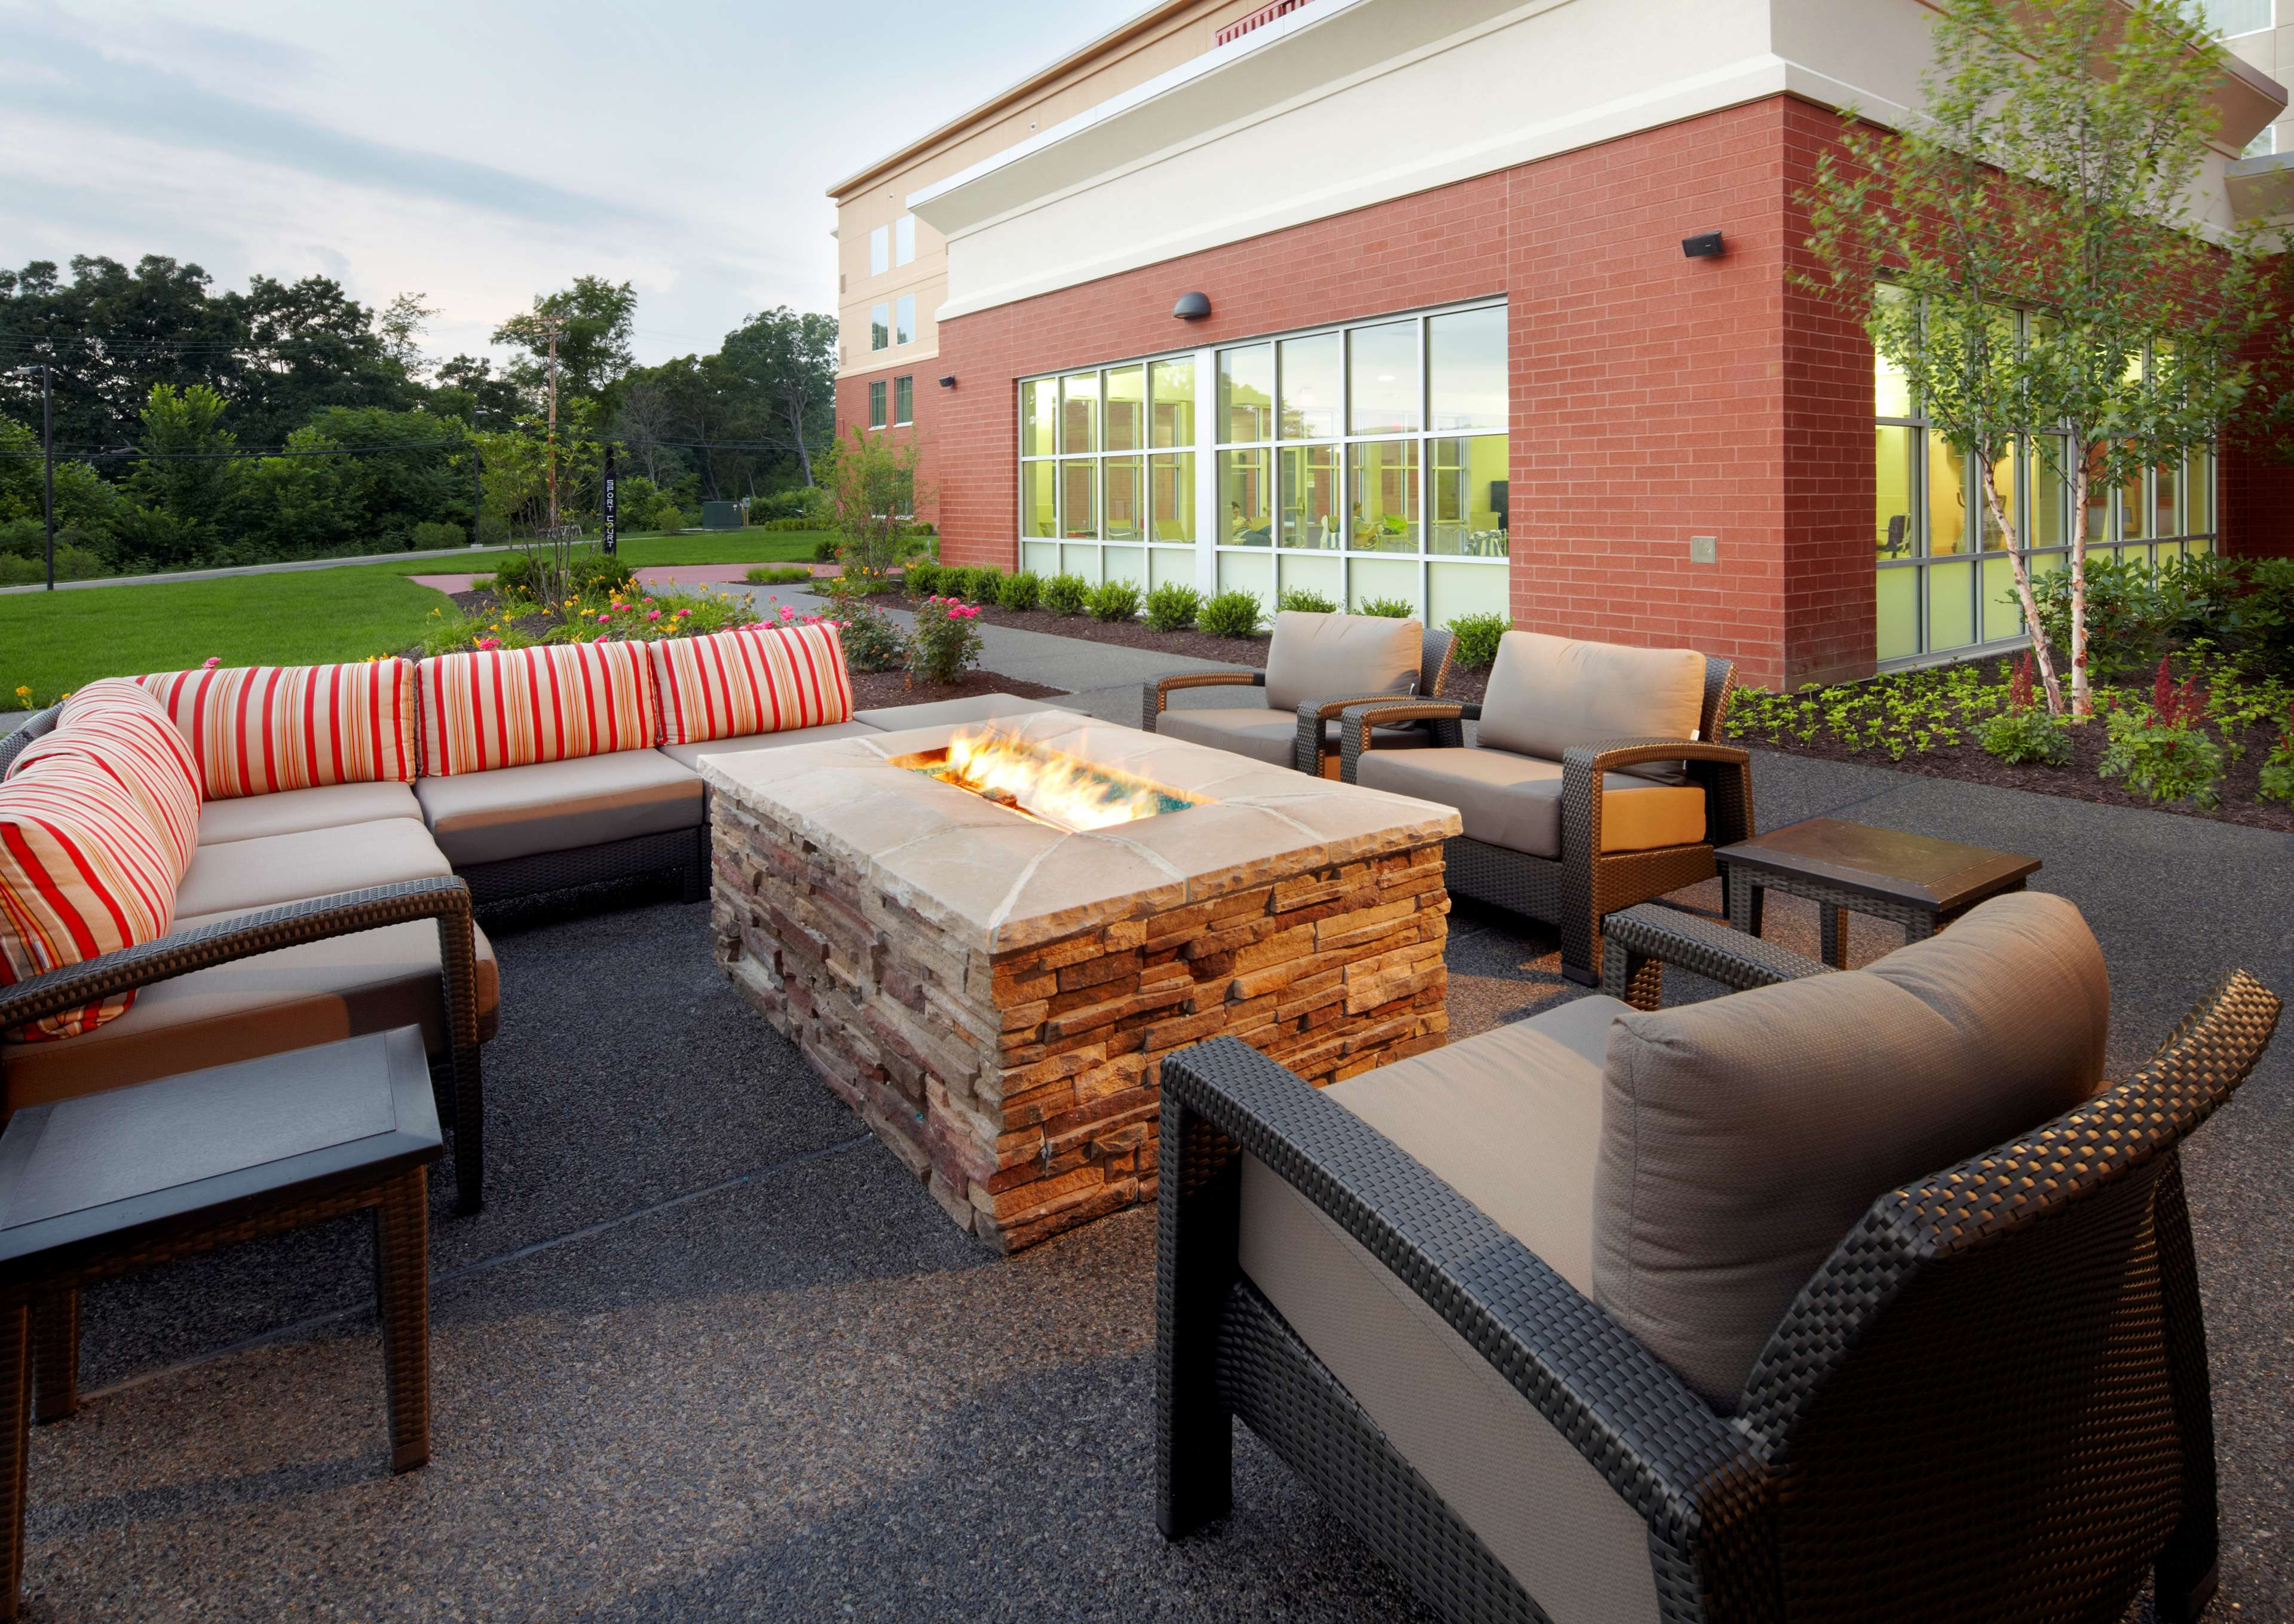 Homewood Suites by Hilton Pittsburgh Airport Robinson Mall Area PA image 3